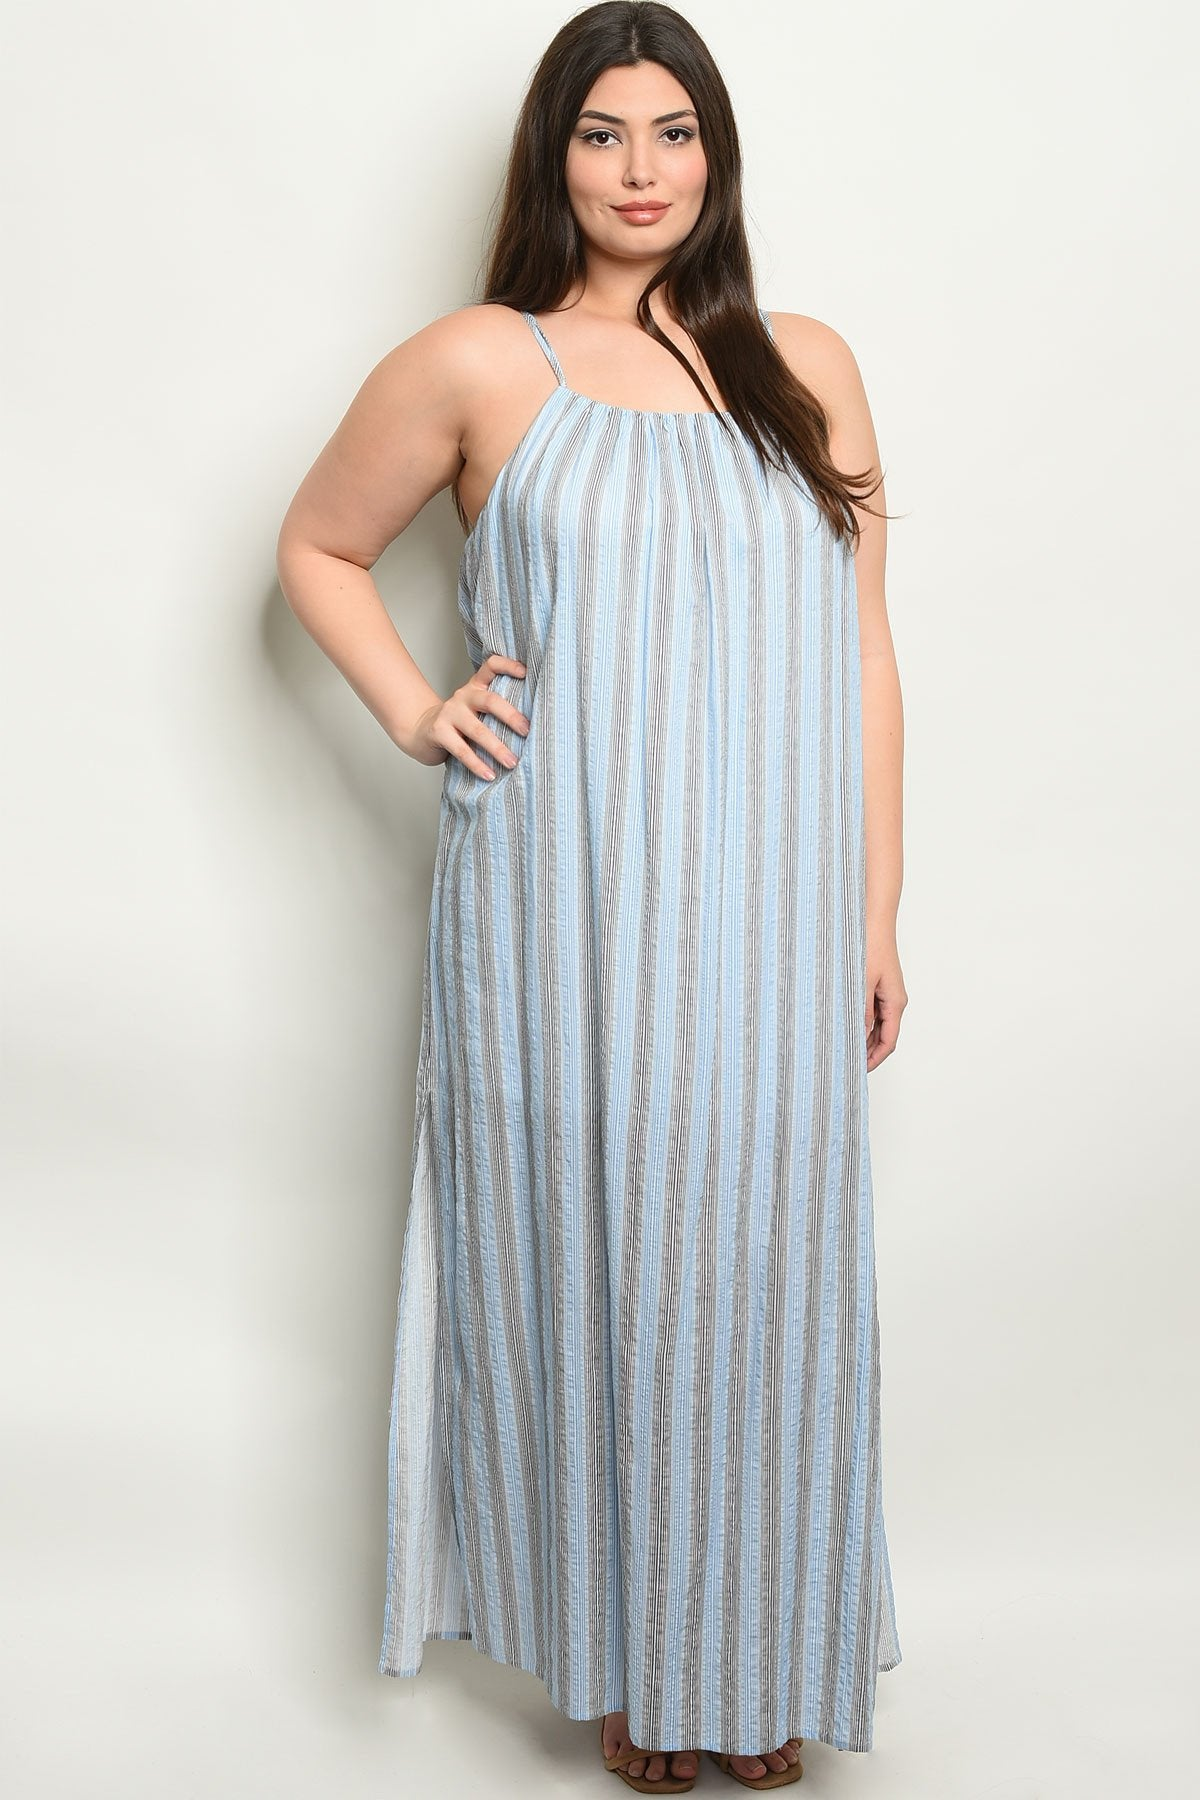 Blue Stripes Plus Size Dress - Manifest Best Boutique